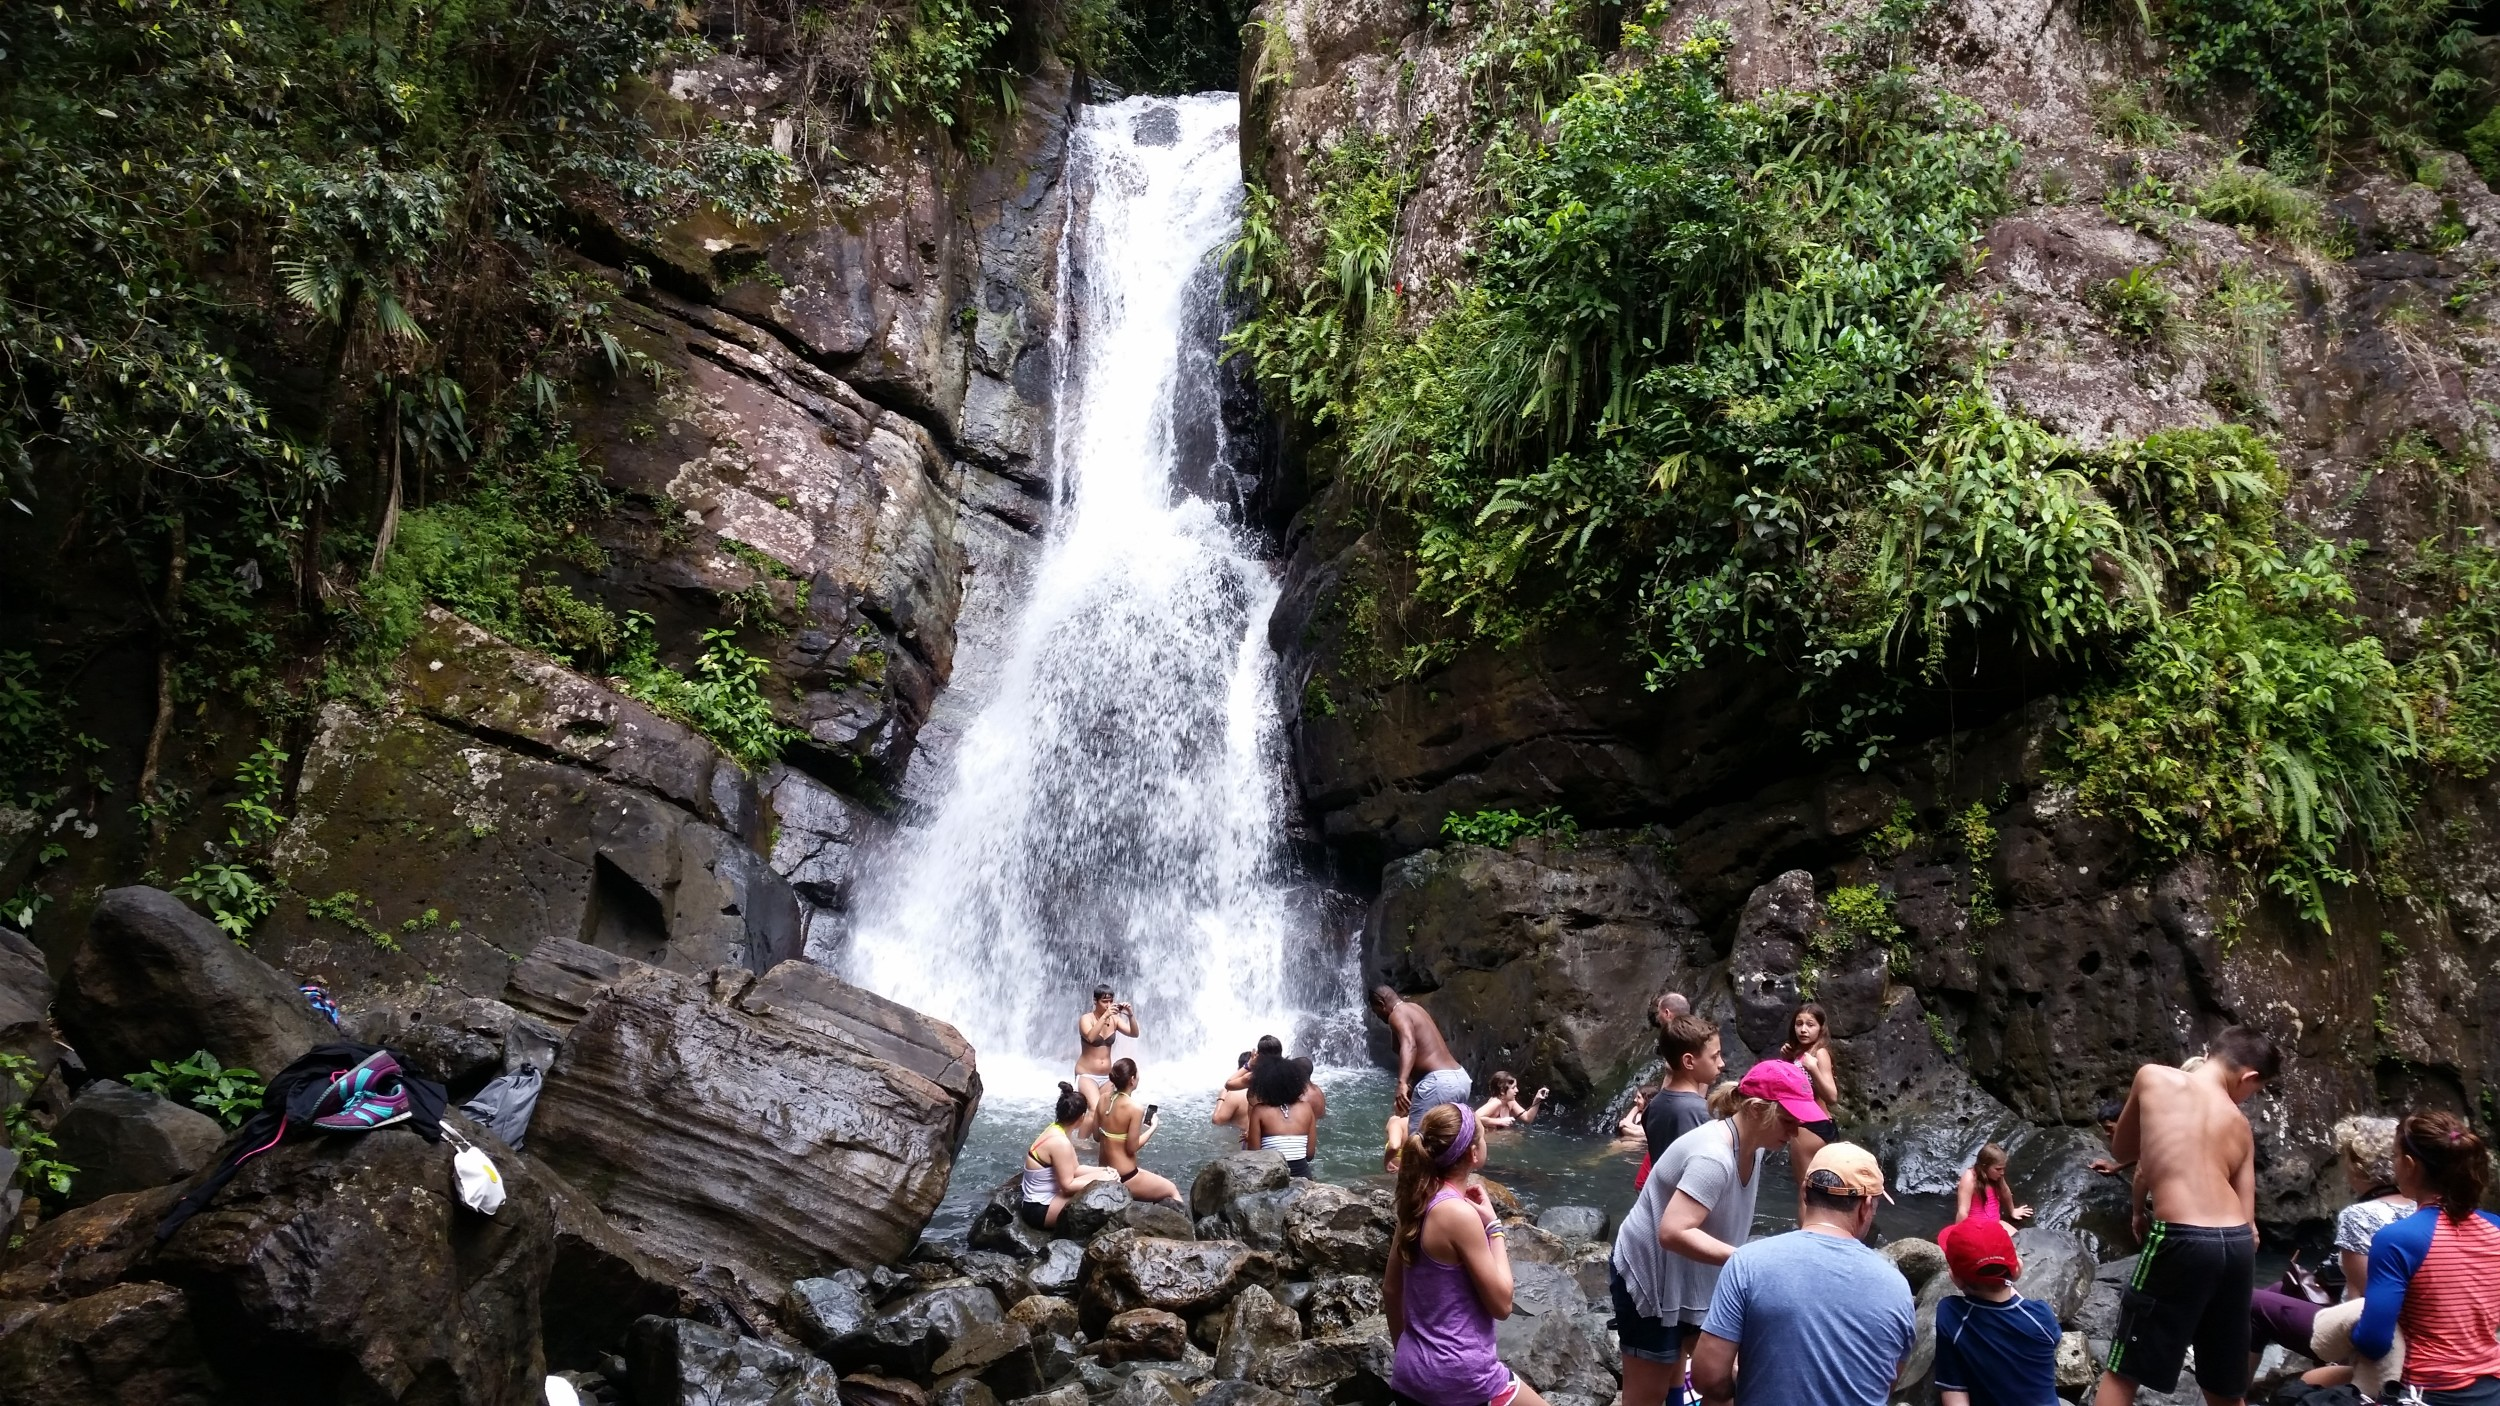 YunqueRainforestfalls